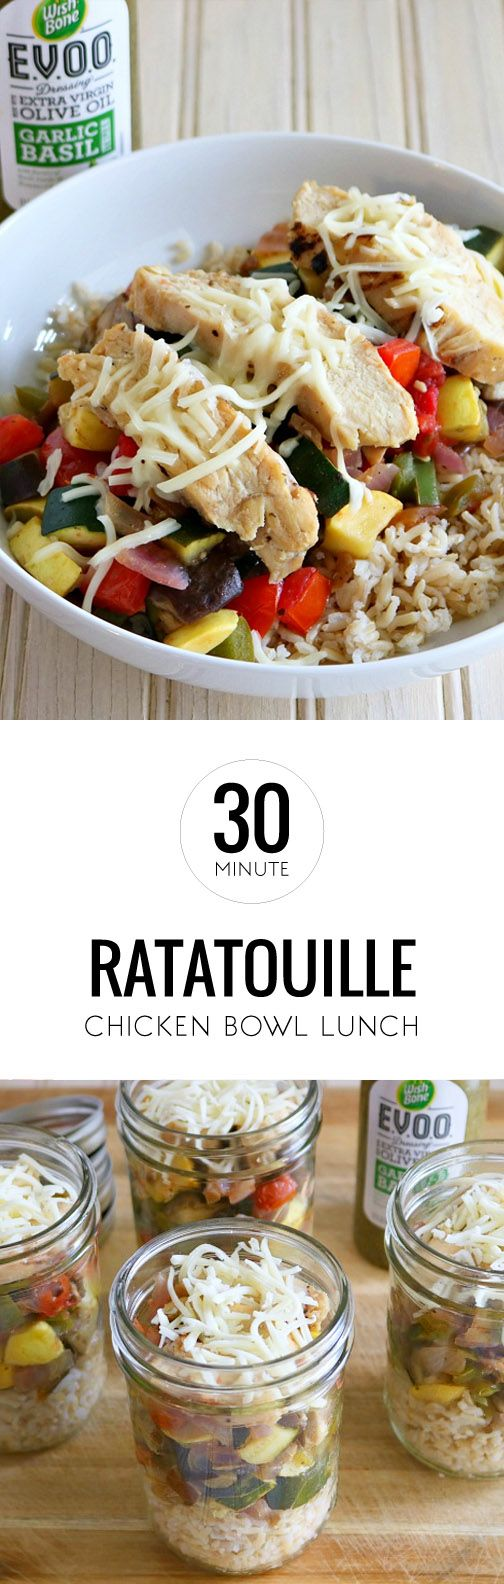 Find all your favorite Italian-flavored ingredients in this recipe for a Ratatouille Chicken Lunch Bowl. From the eggplant and zucchini to the portabella mushroom and mozzarella cheese, this delicious dinner dish even starts with a bed of Tyson Grilled Chicken Breast Strips. Top with Wish-Bone EVOO Garlic and Basil Dressing to kick off this 30-minute dish. Don't forget to find all your ingredients at Kroger.